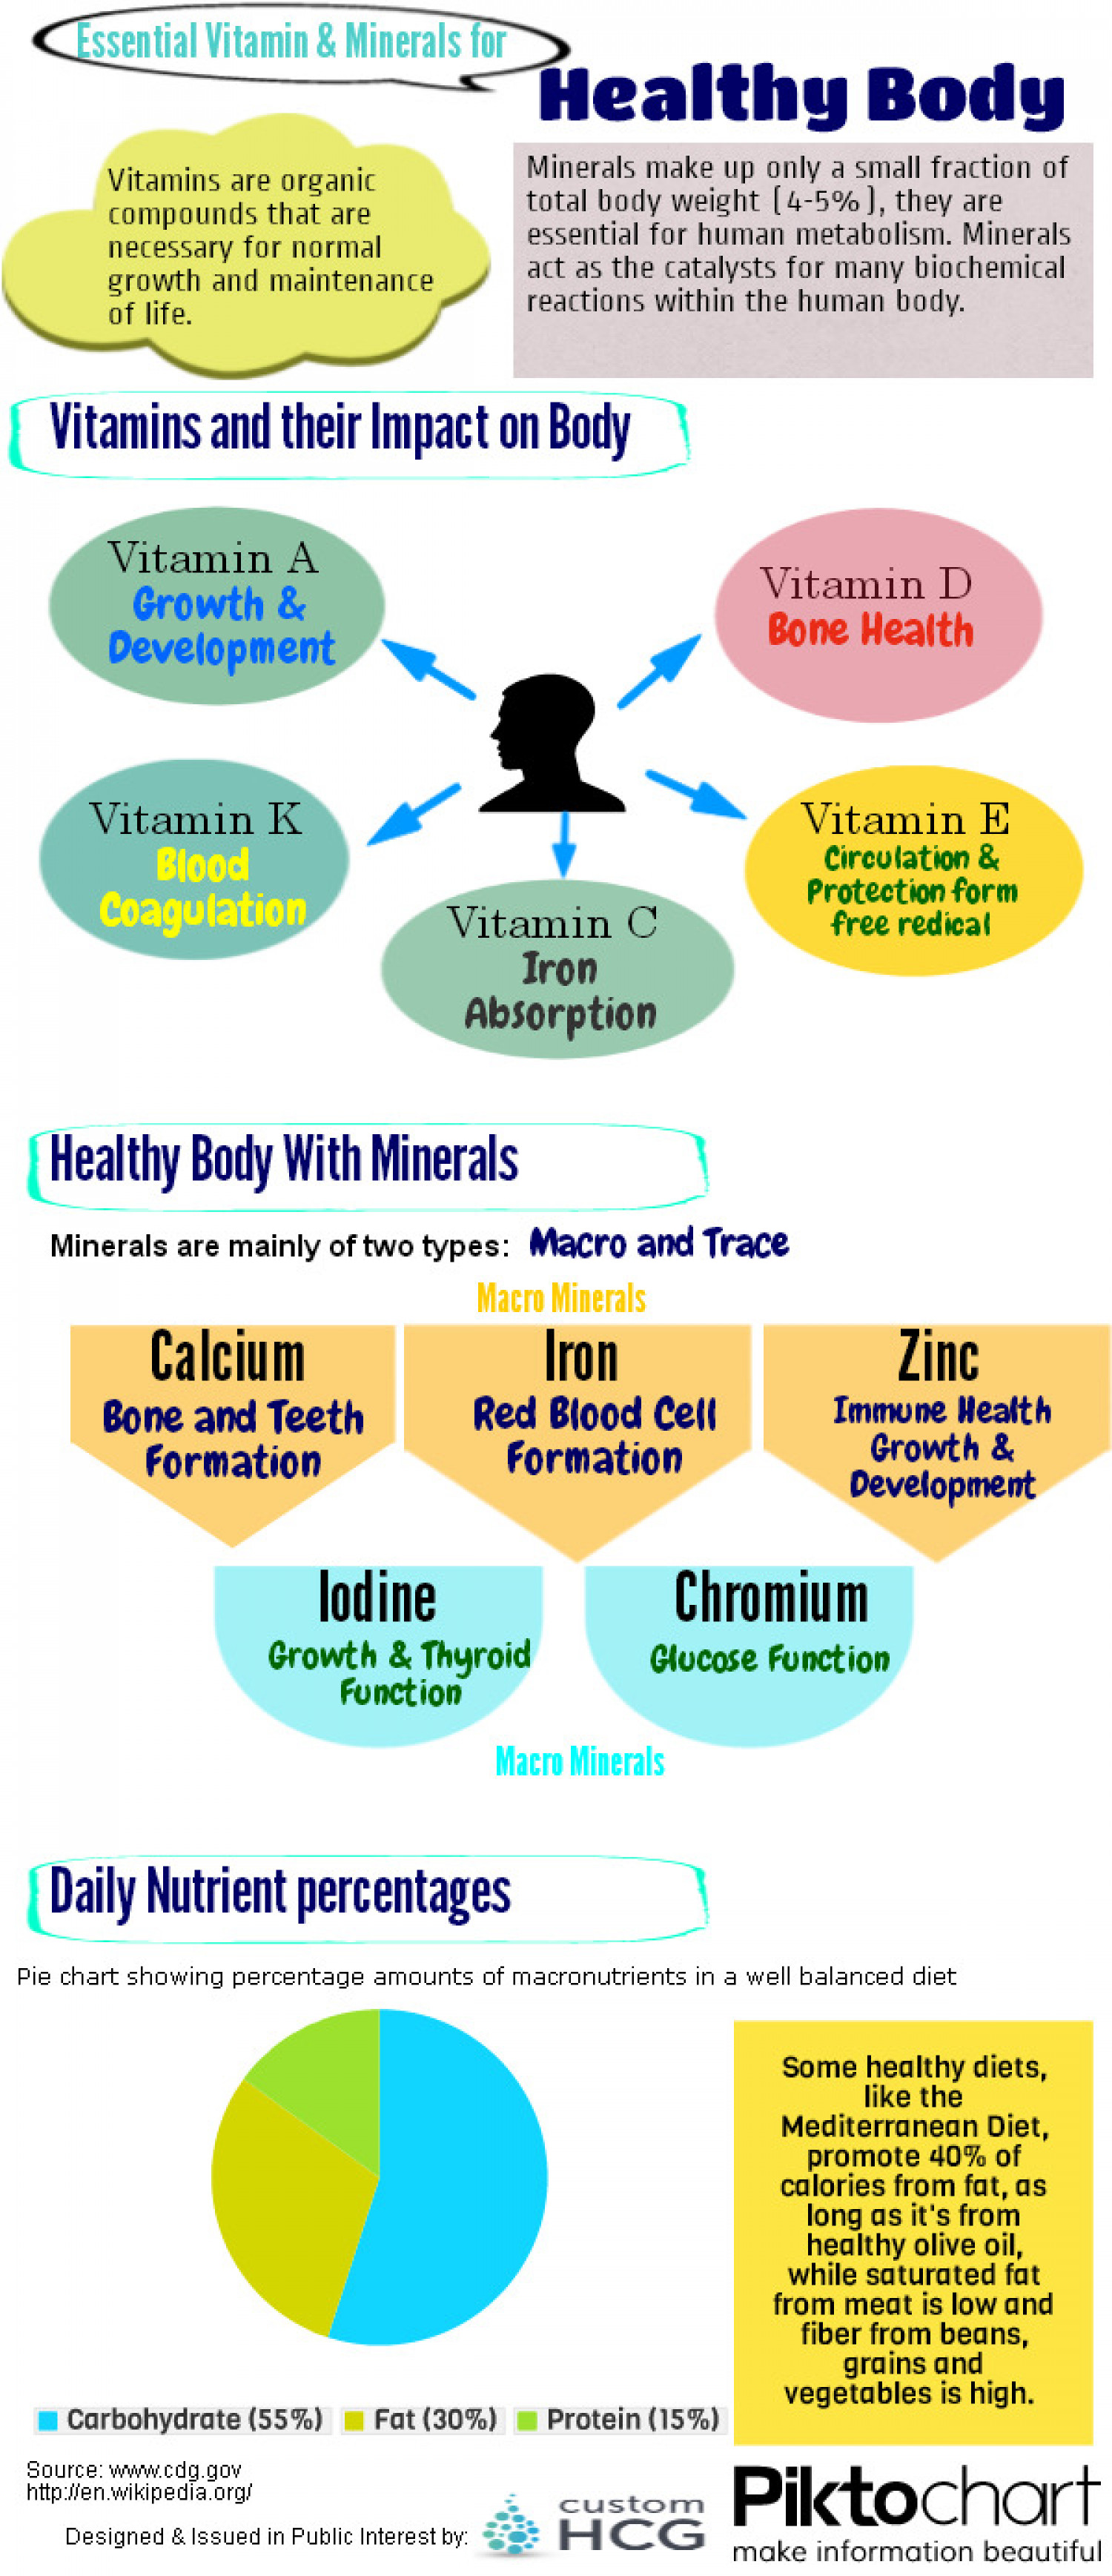 Essential Vitamins And Minerals For Healthy Body